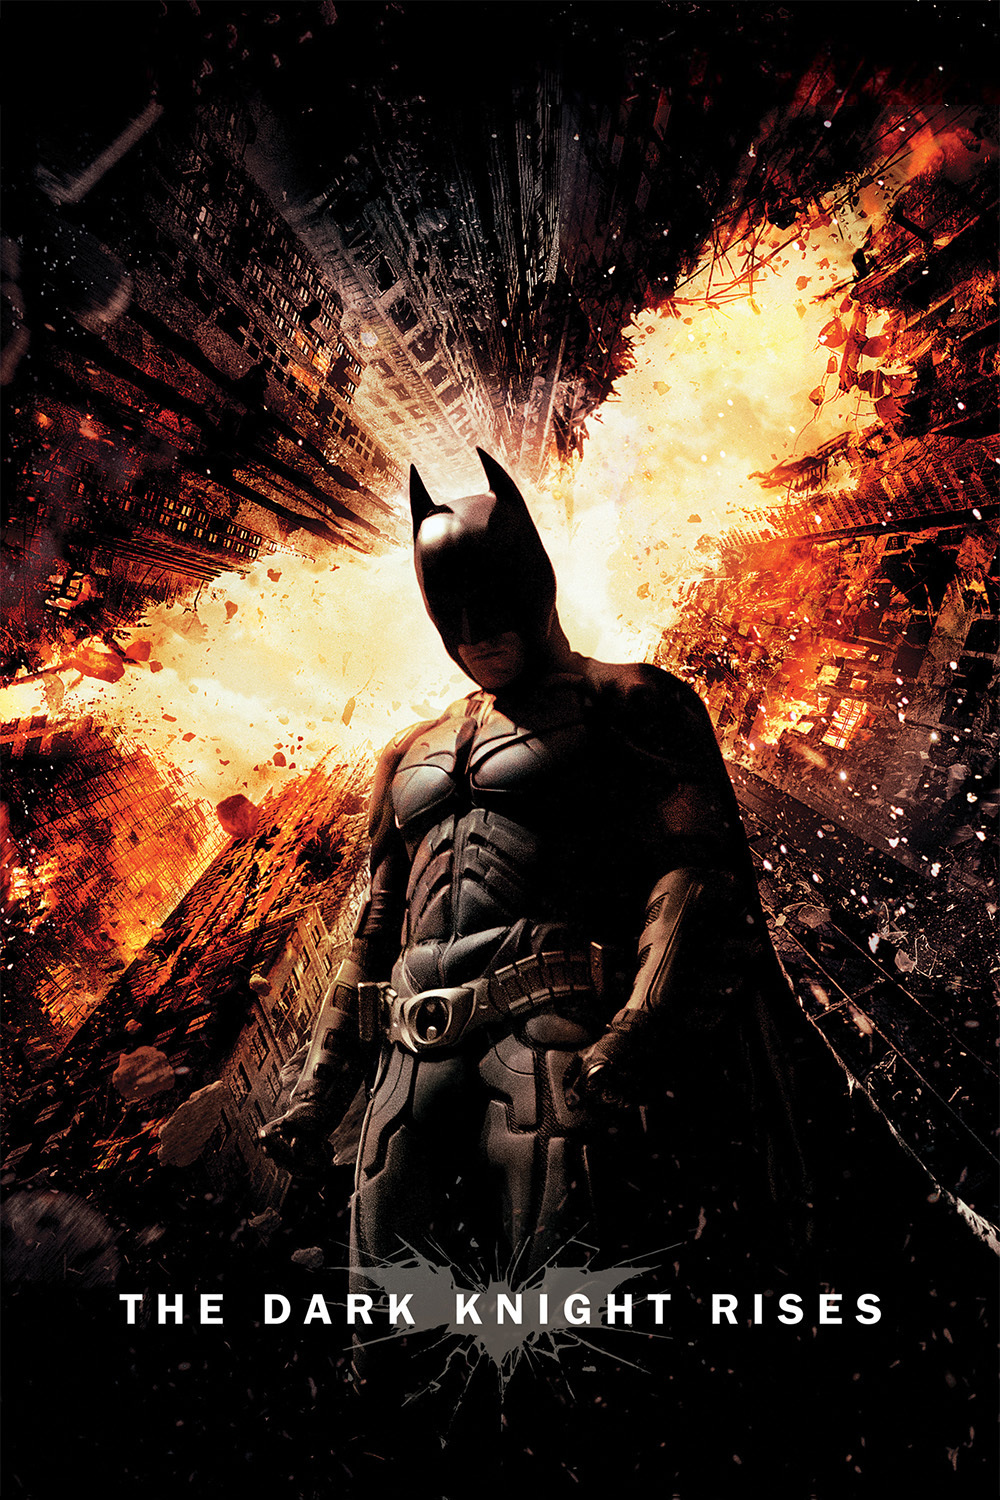 THE DARK KNIGHT RISES (2012) TAMIL DUBBED HD